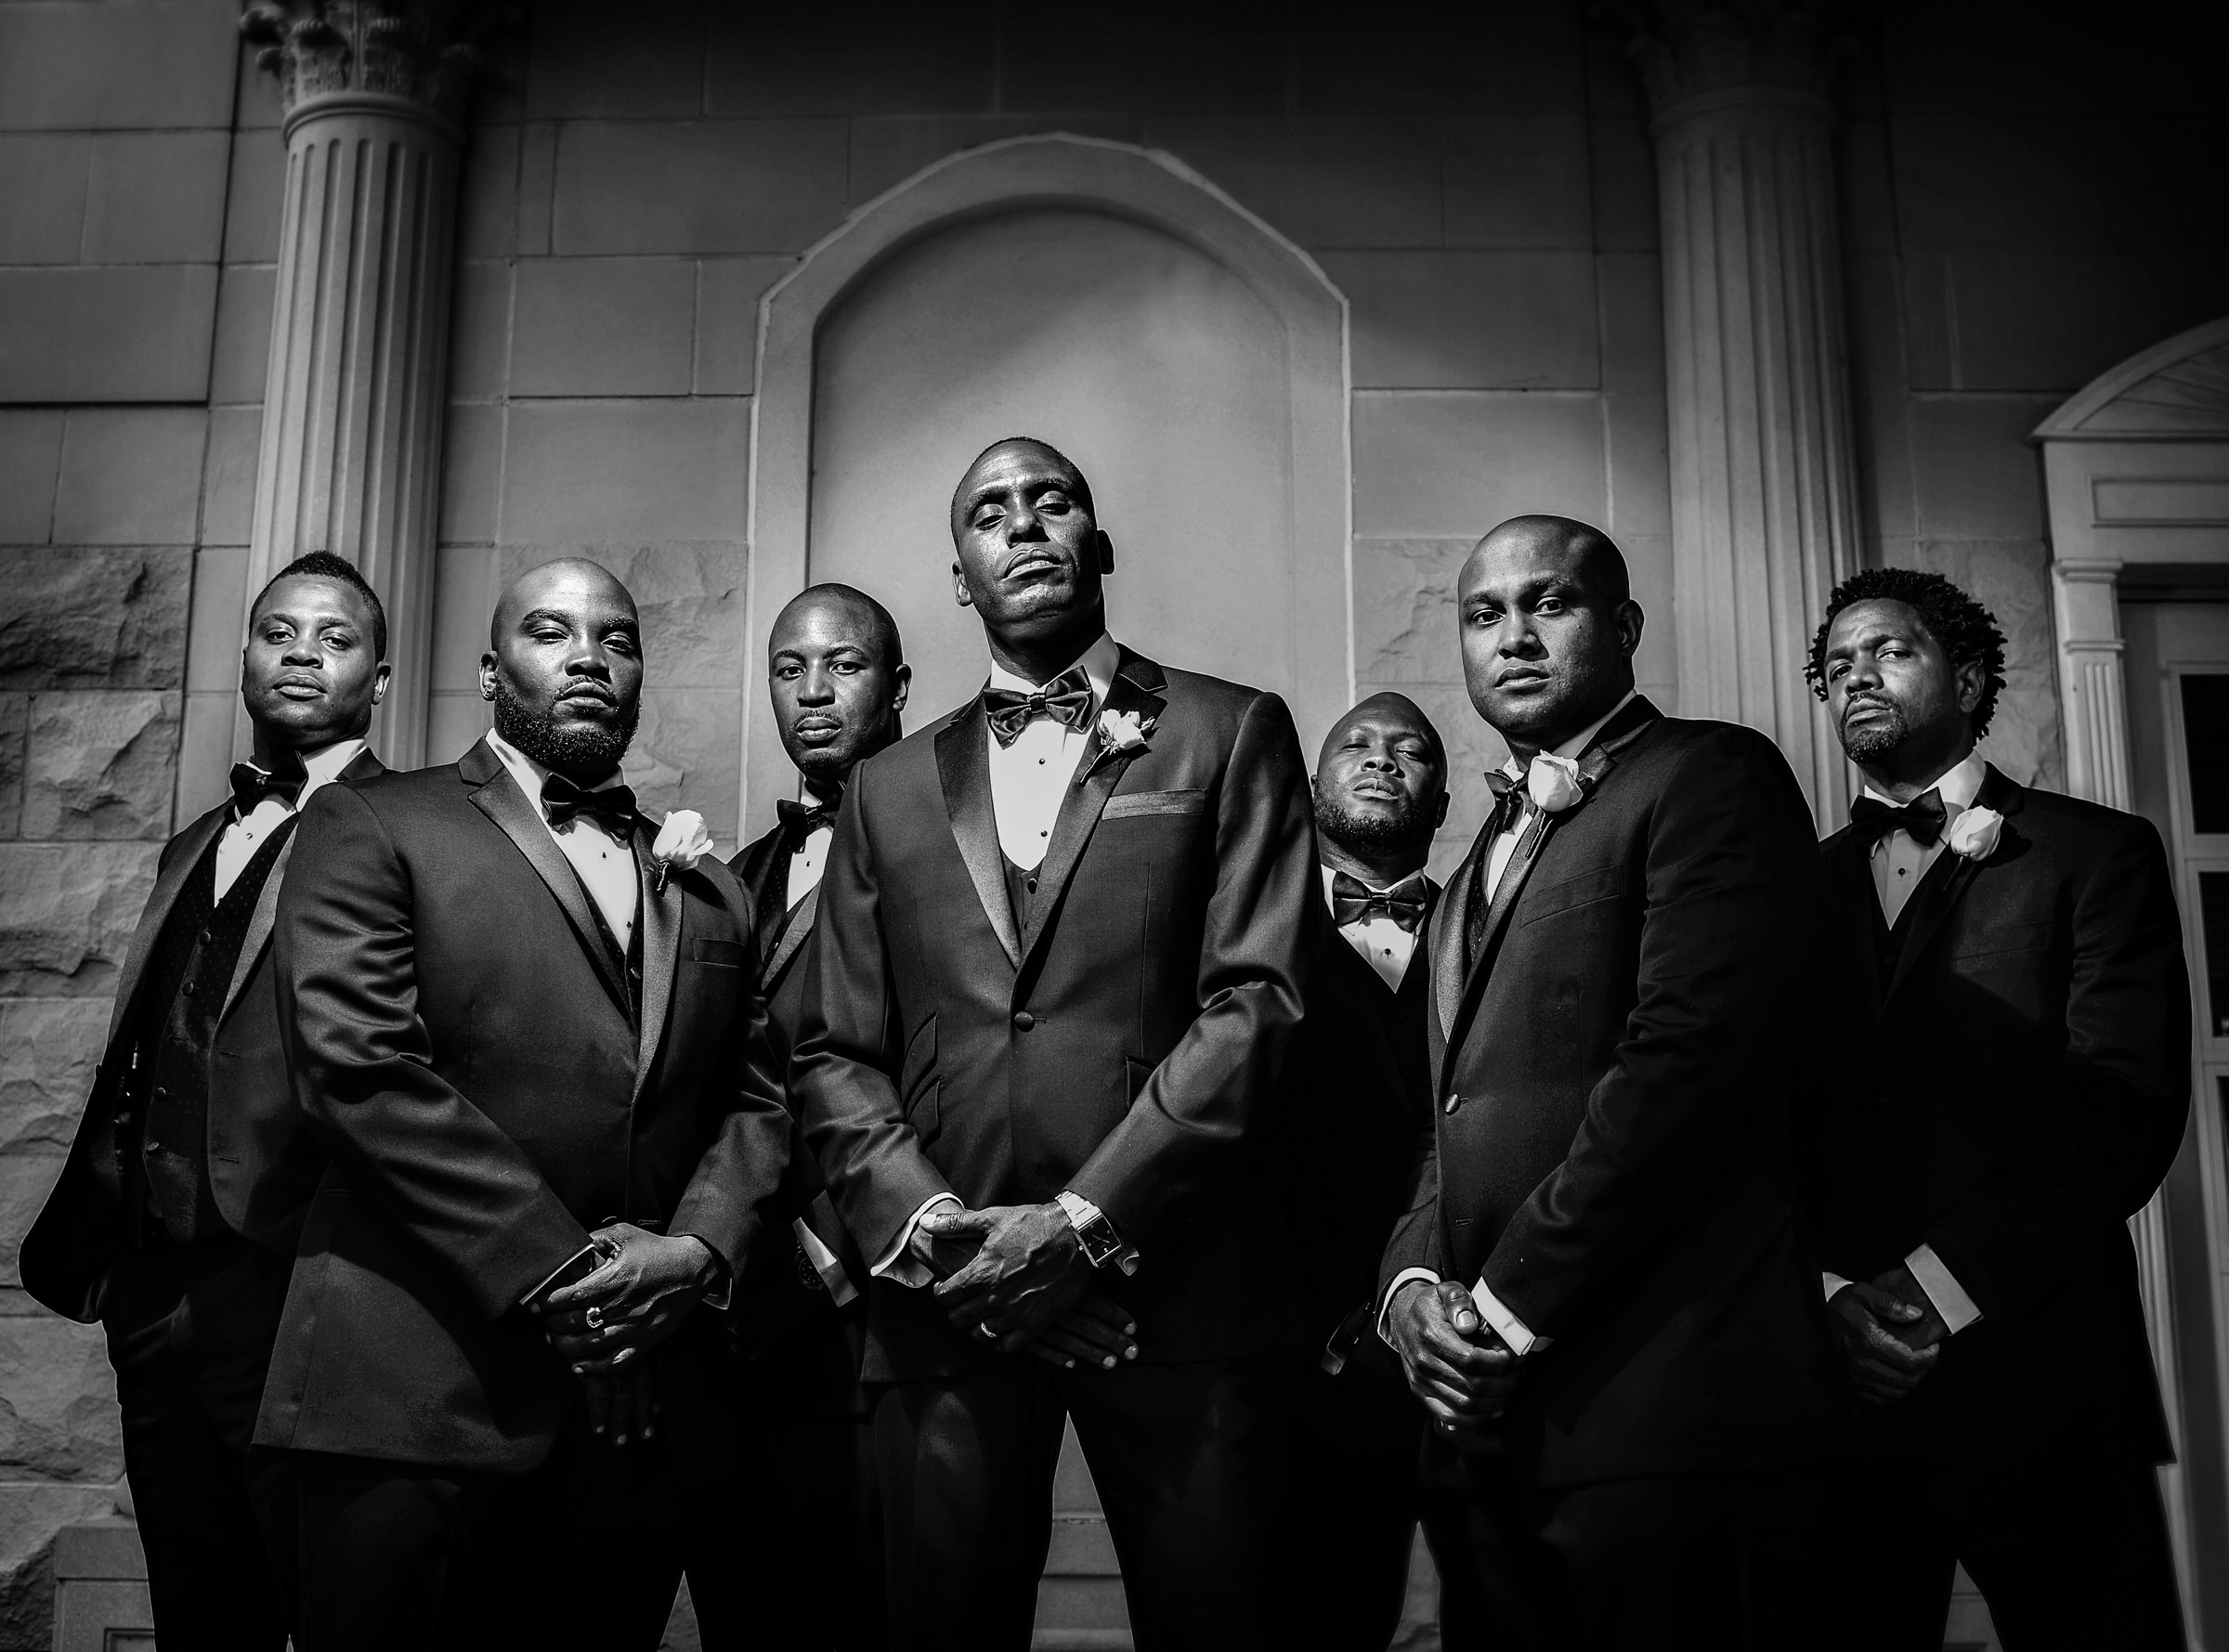 serious-expressions-on-groom-and-groomsmen-jeff-tisman-photography